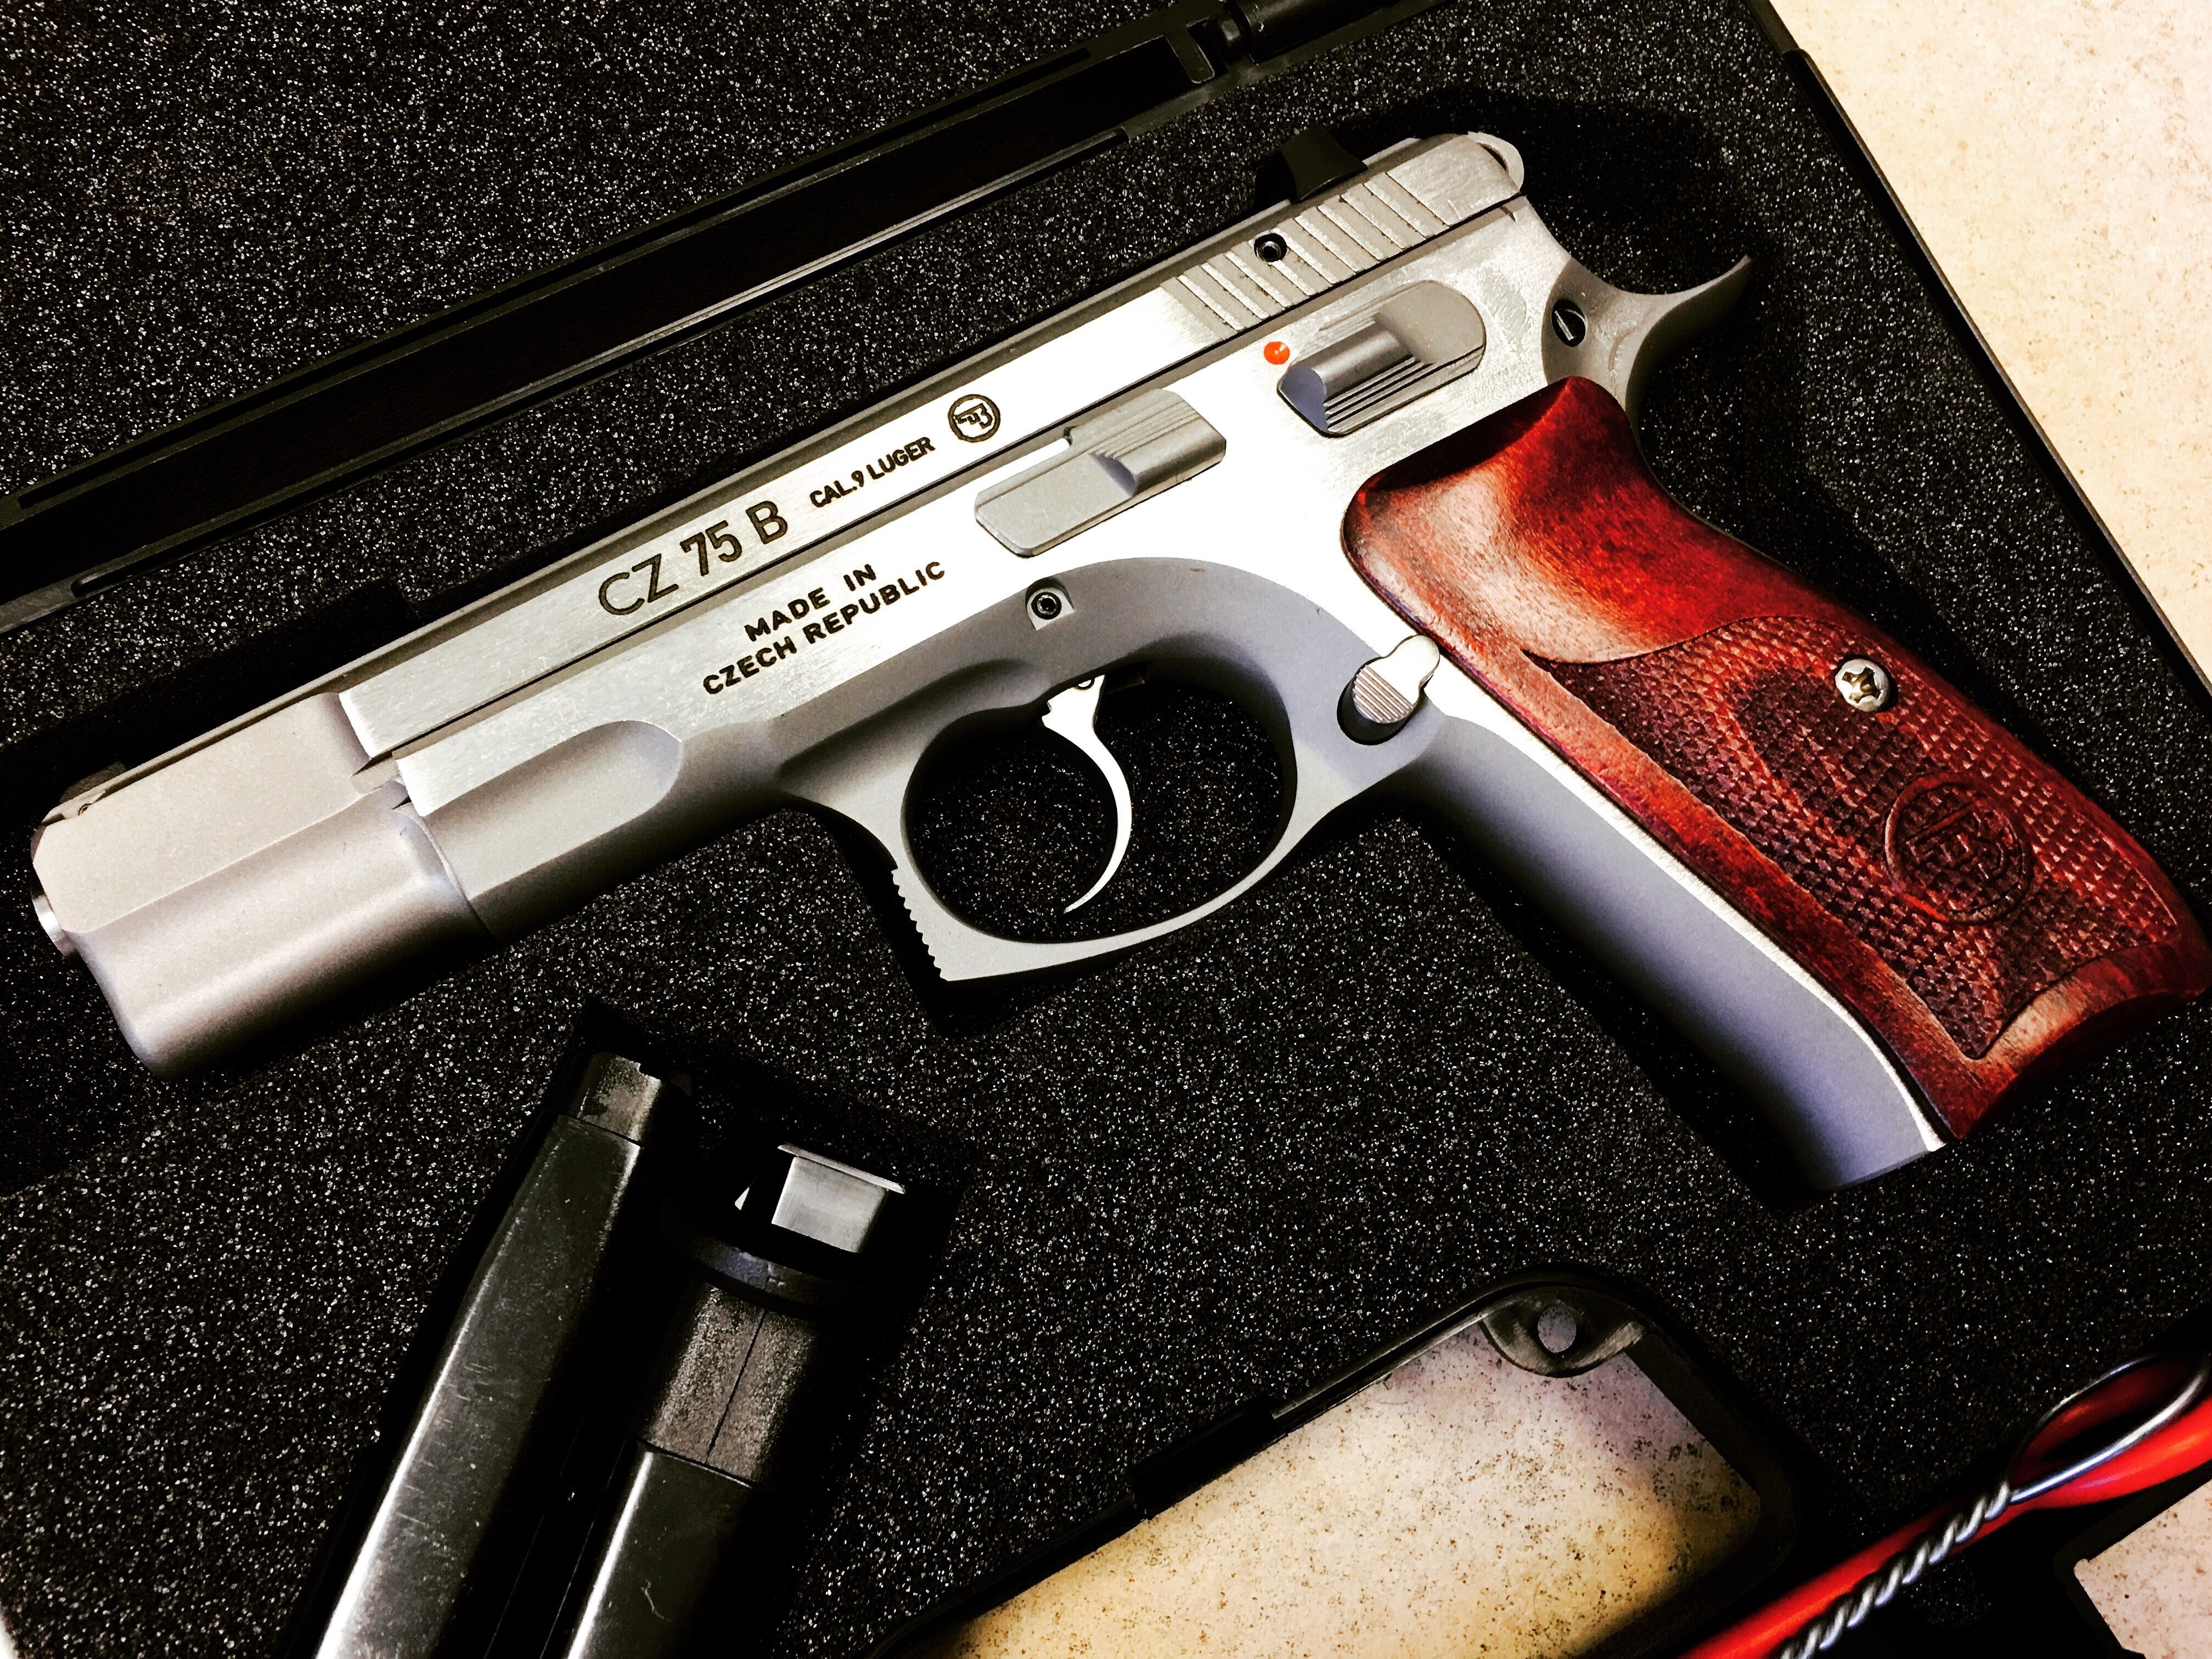 CZ75B NEW EDITION 9MM STAINLESS STEEL